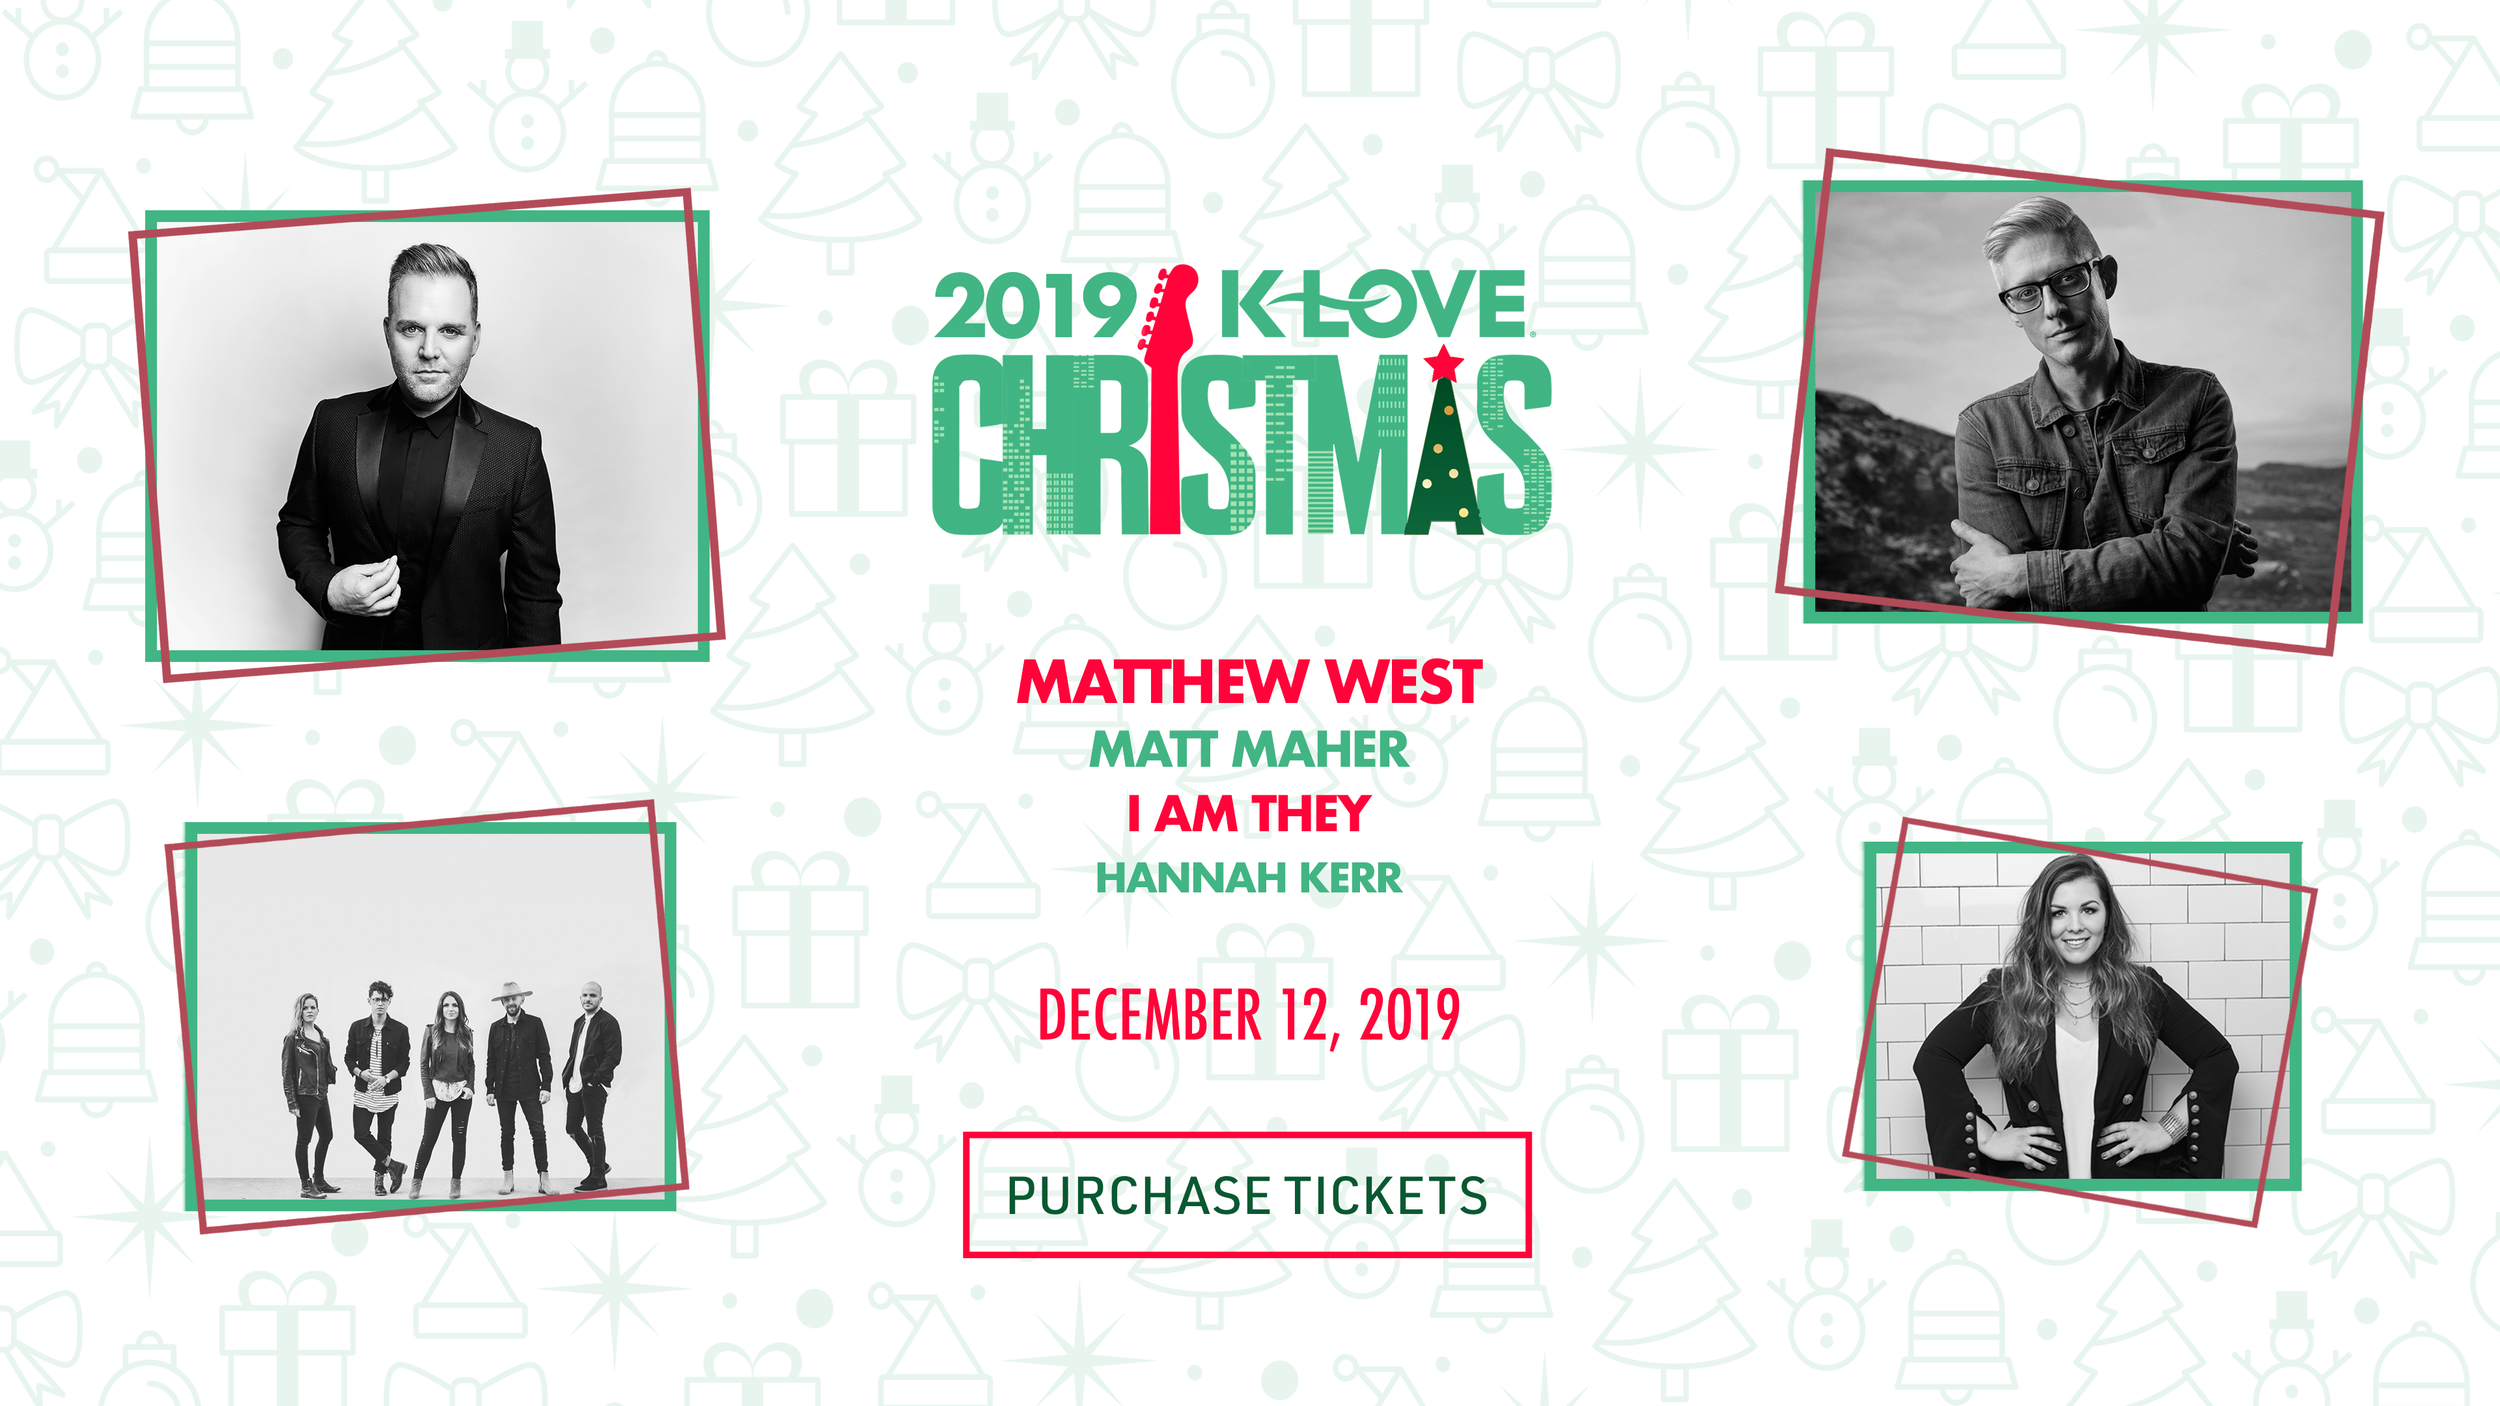 Klove Christmas Tour 2019.Events Life Change Resources